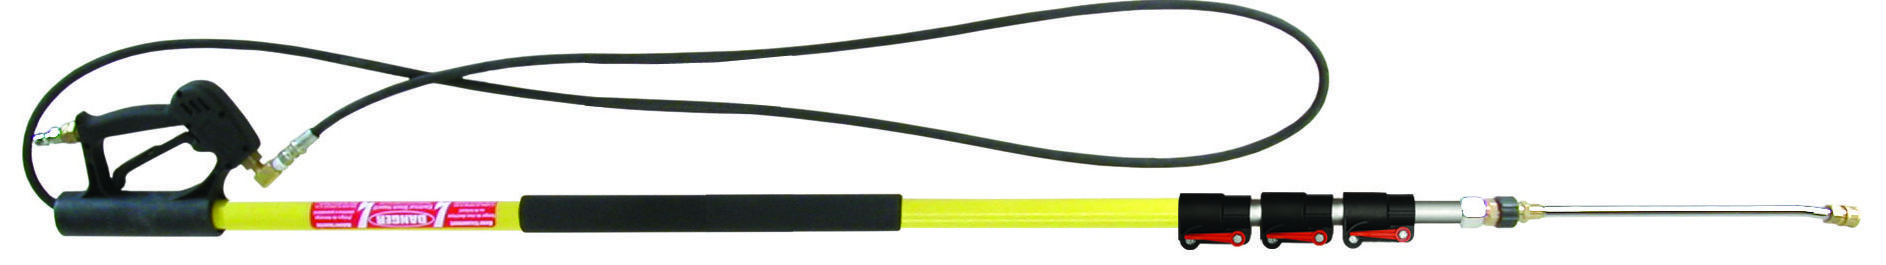 24' fiberglass telescoping wand - 4 pole compact design